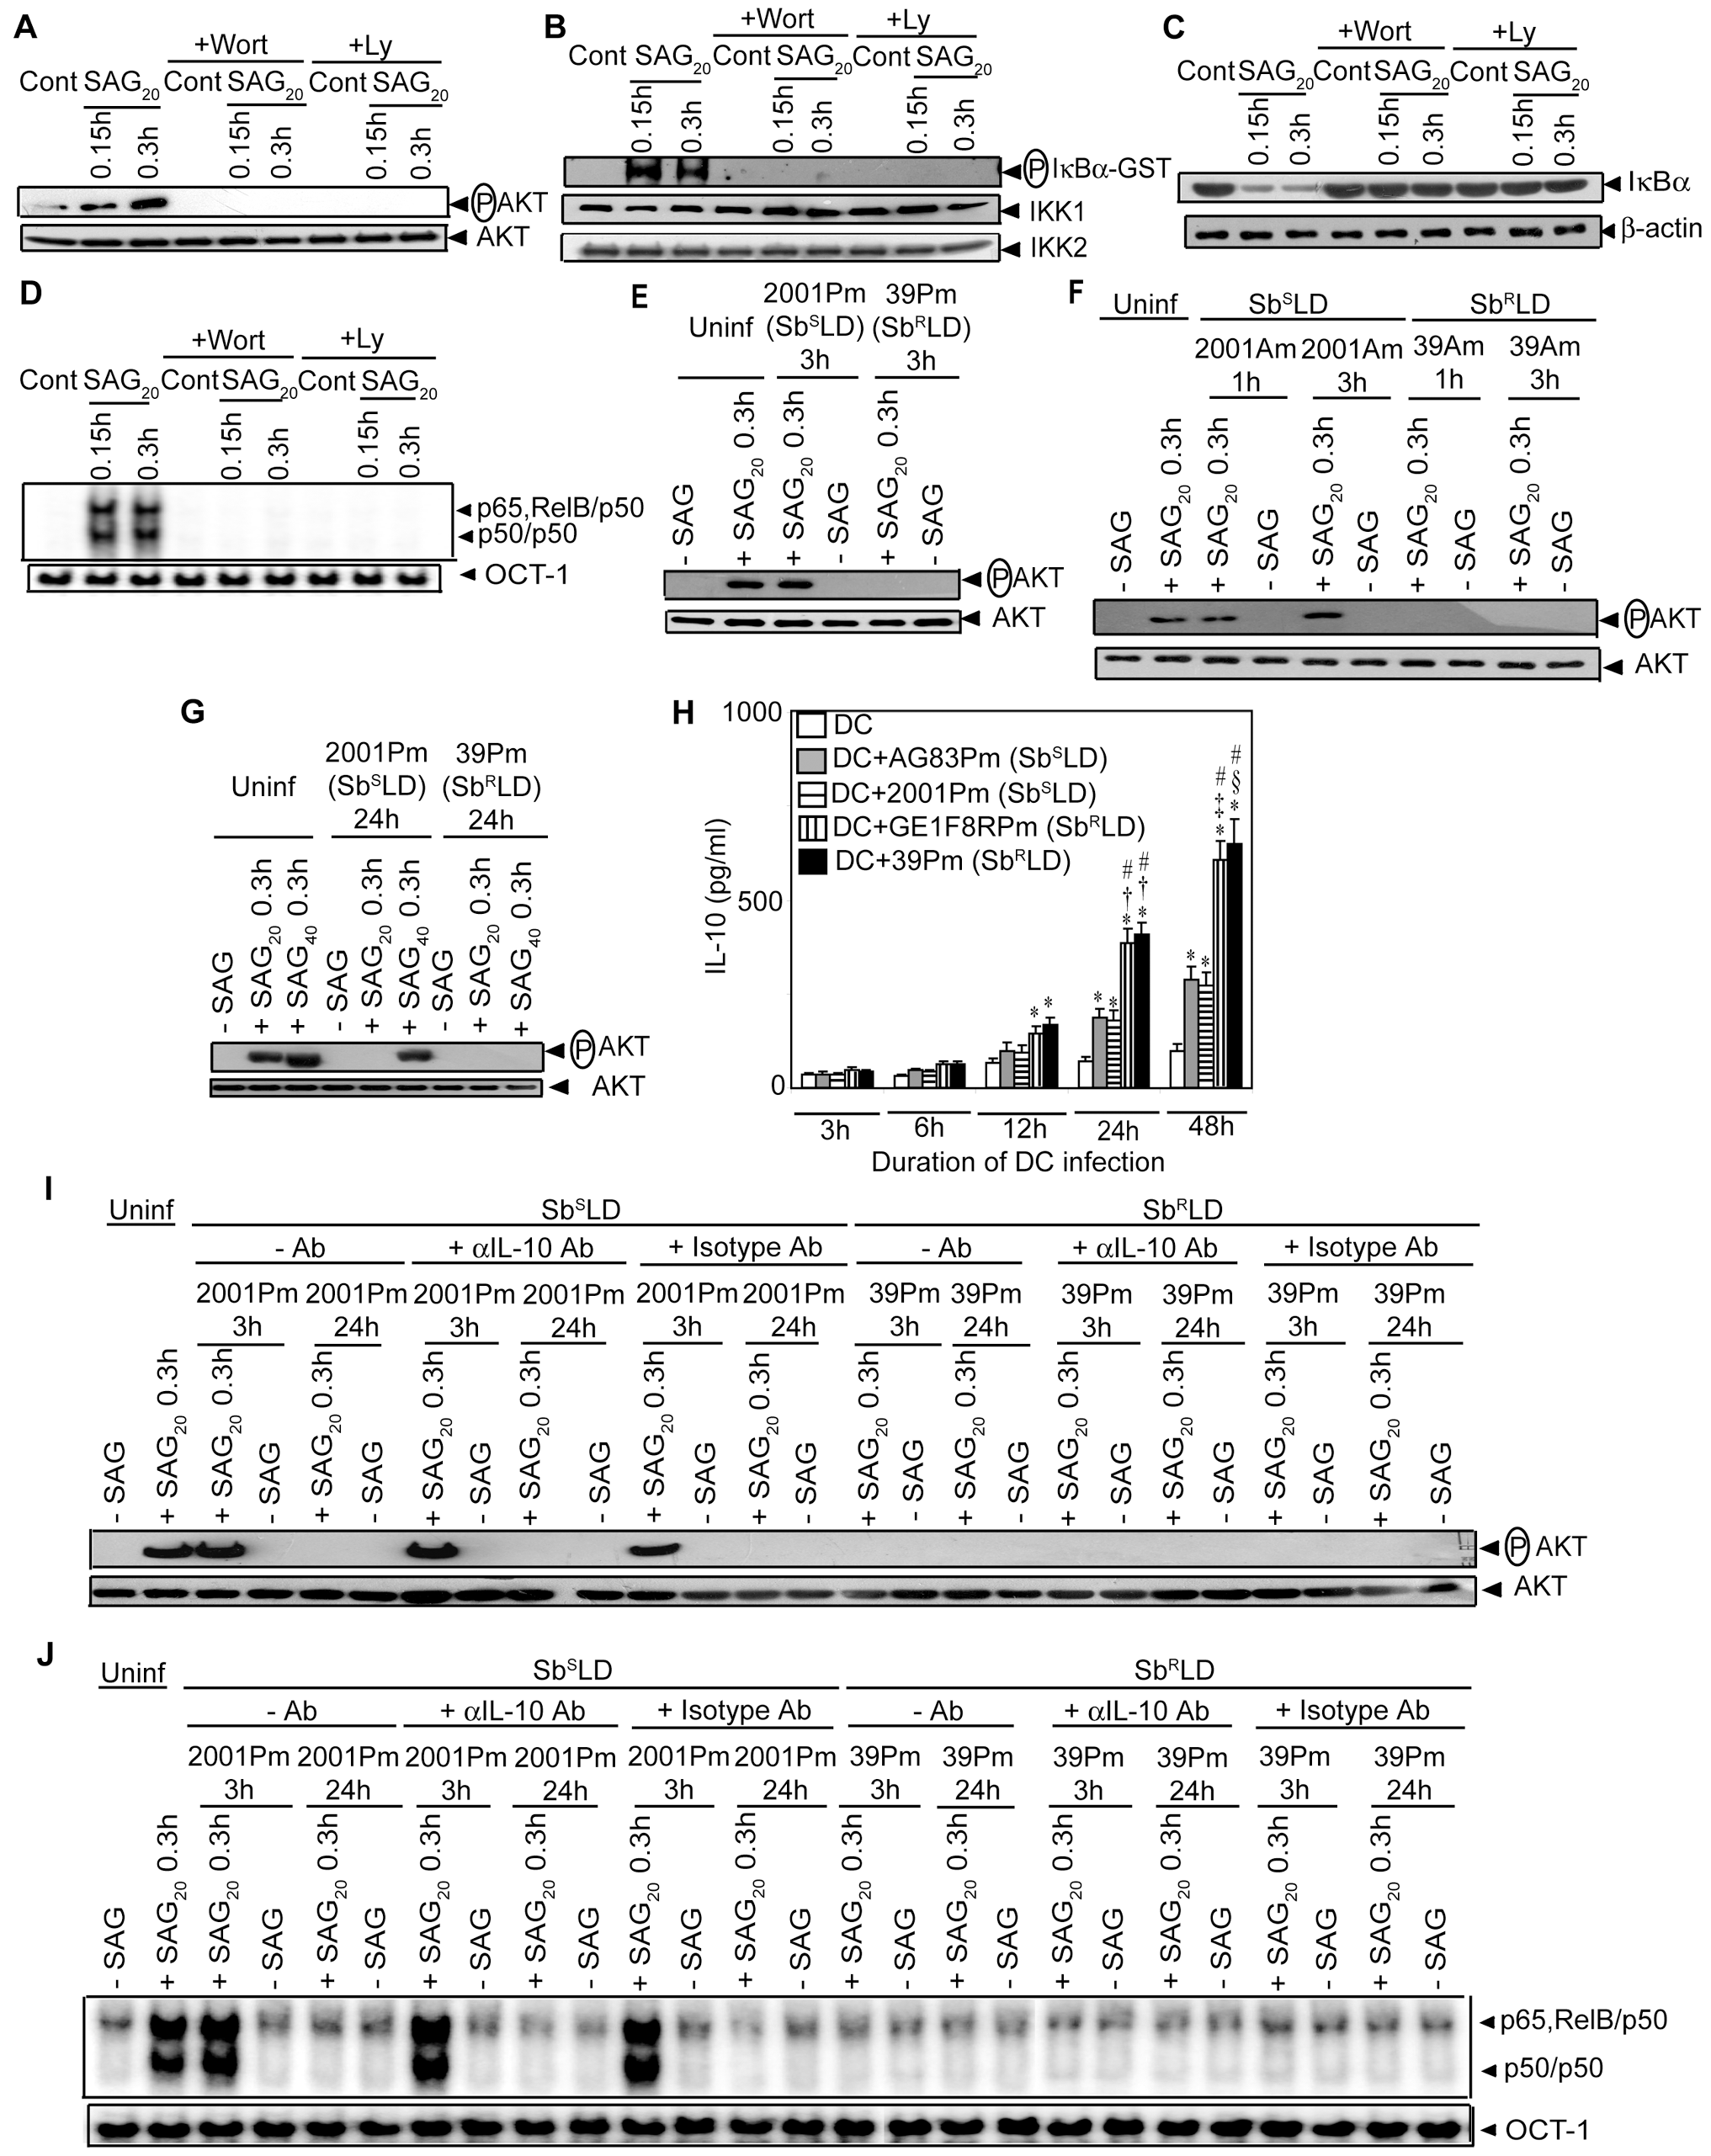 PI3K/AKT suppression by Sb<sup>R</sup>LD inhibits SAG-induced NF-κB signaling in an IL-10 independent manner.